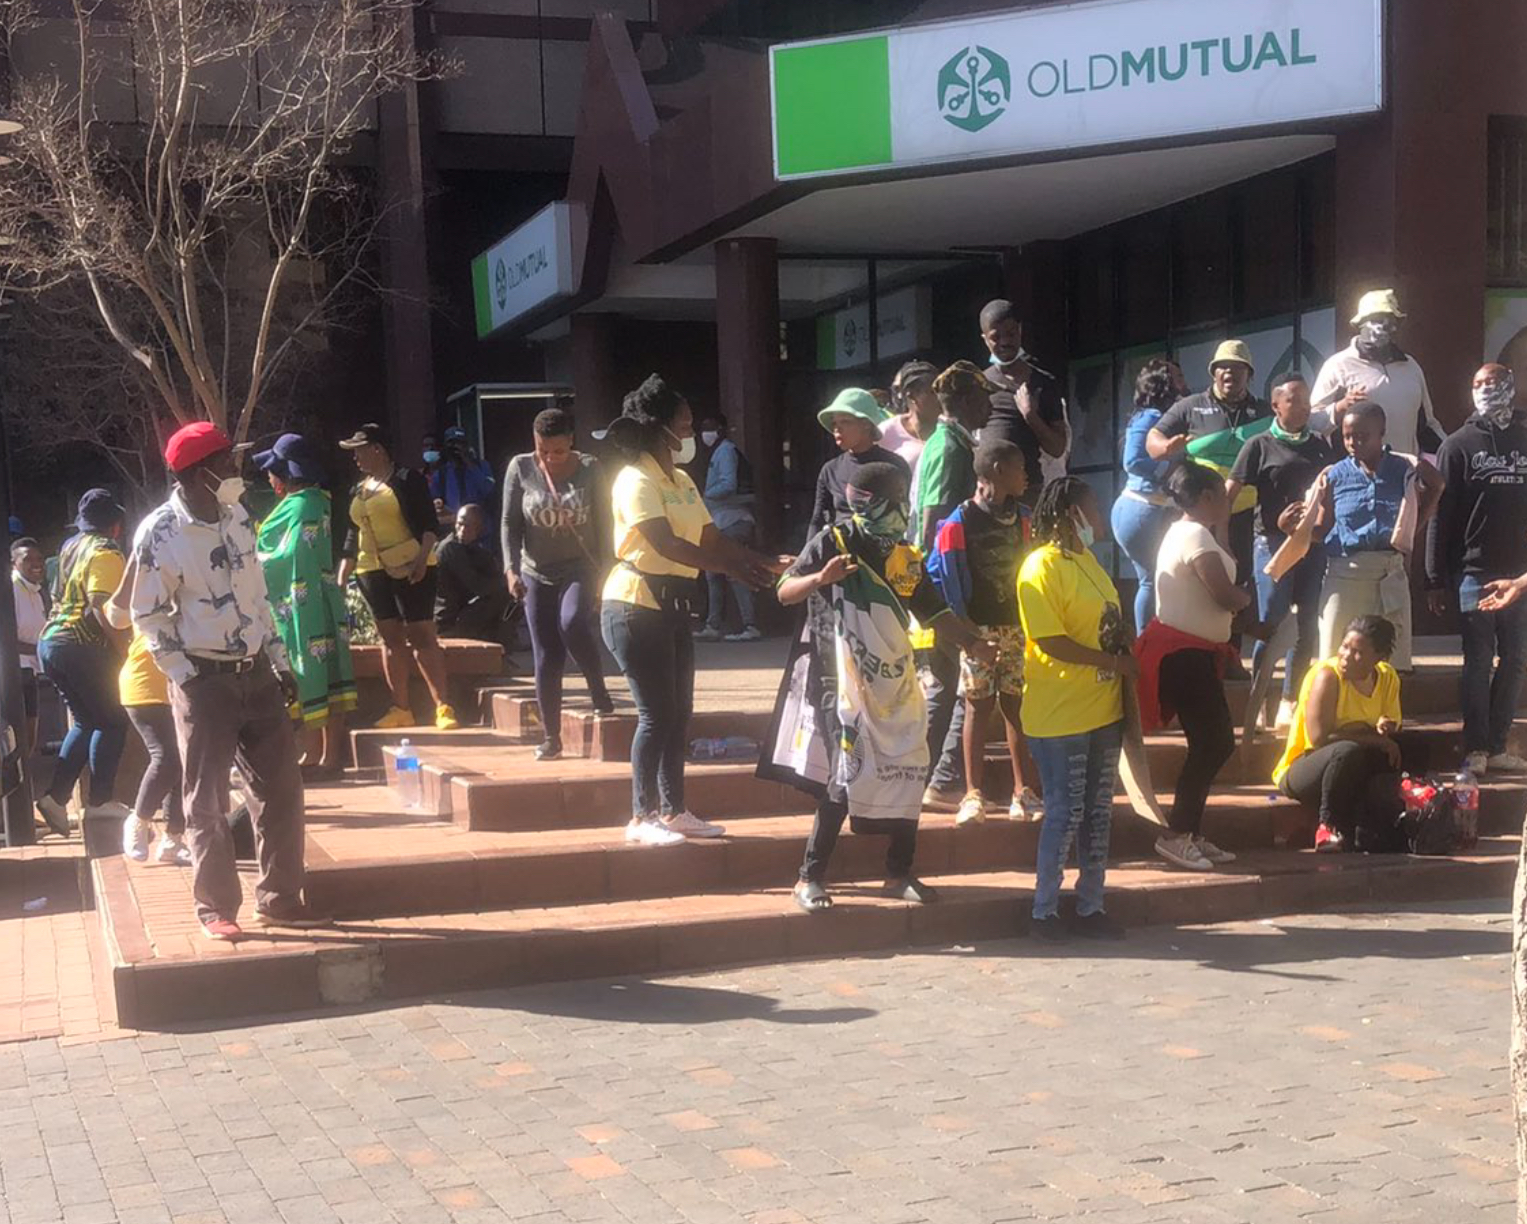 More ANC councillor squabble pickets at Luthuli House